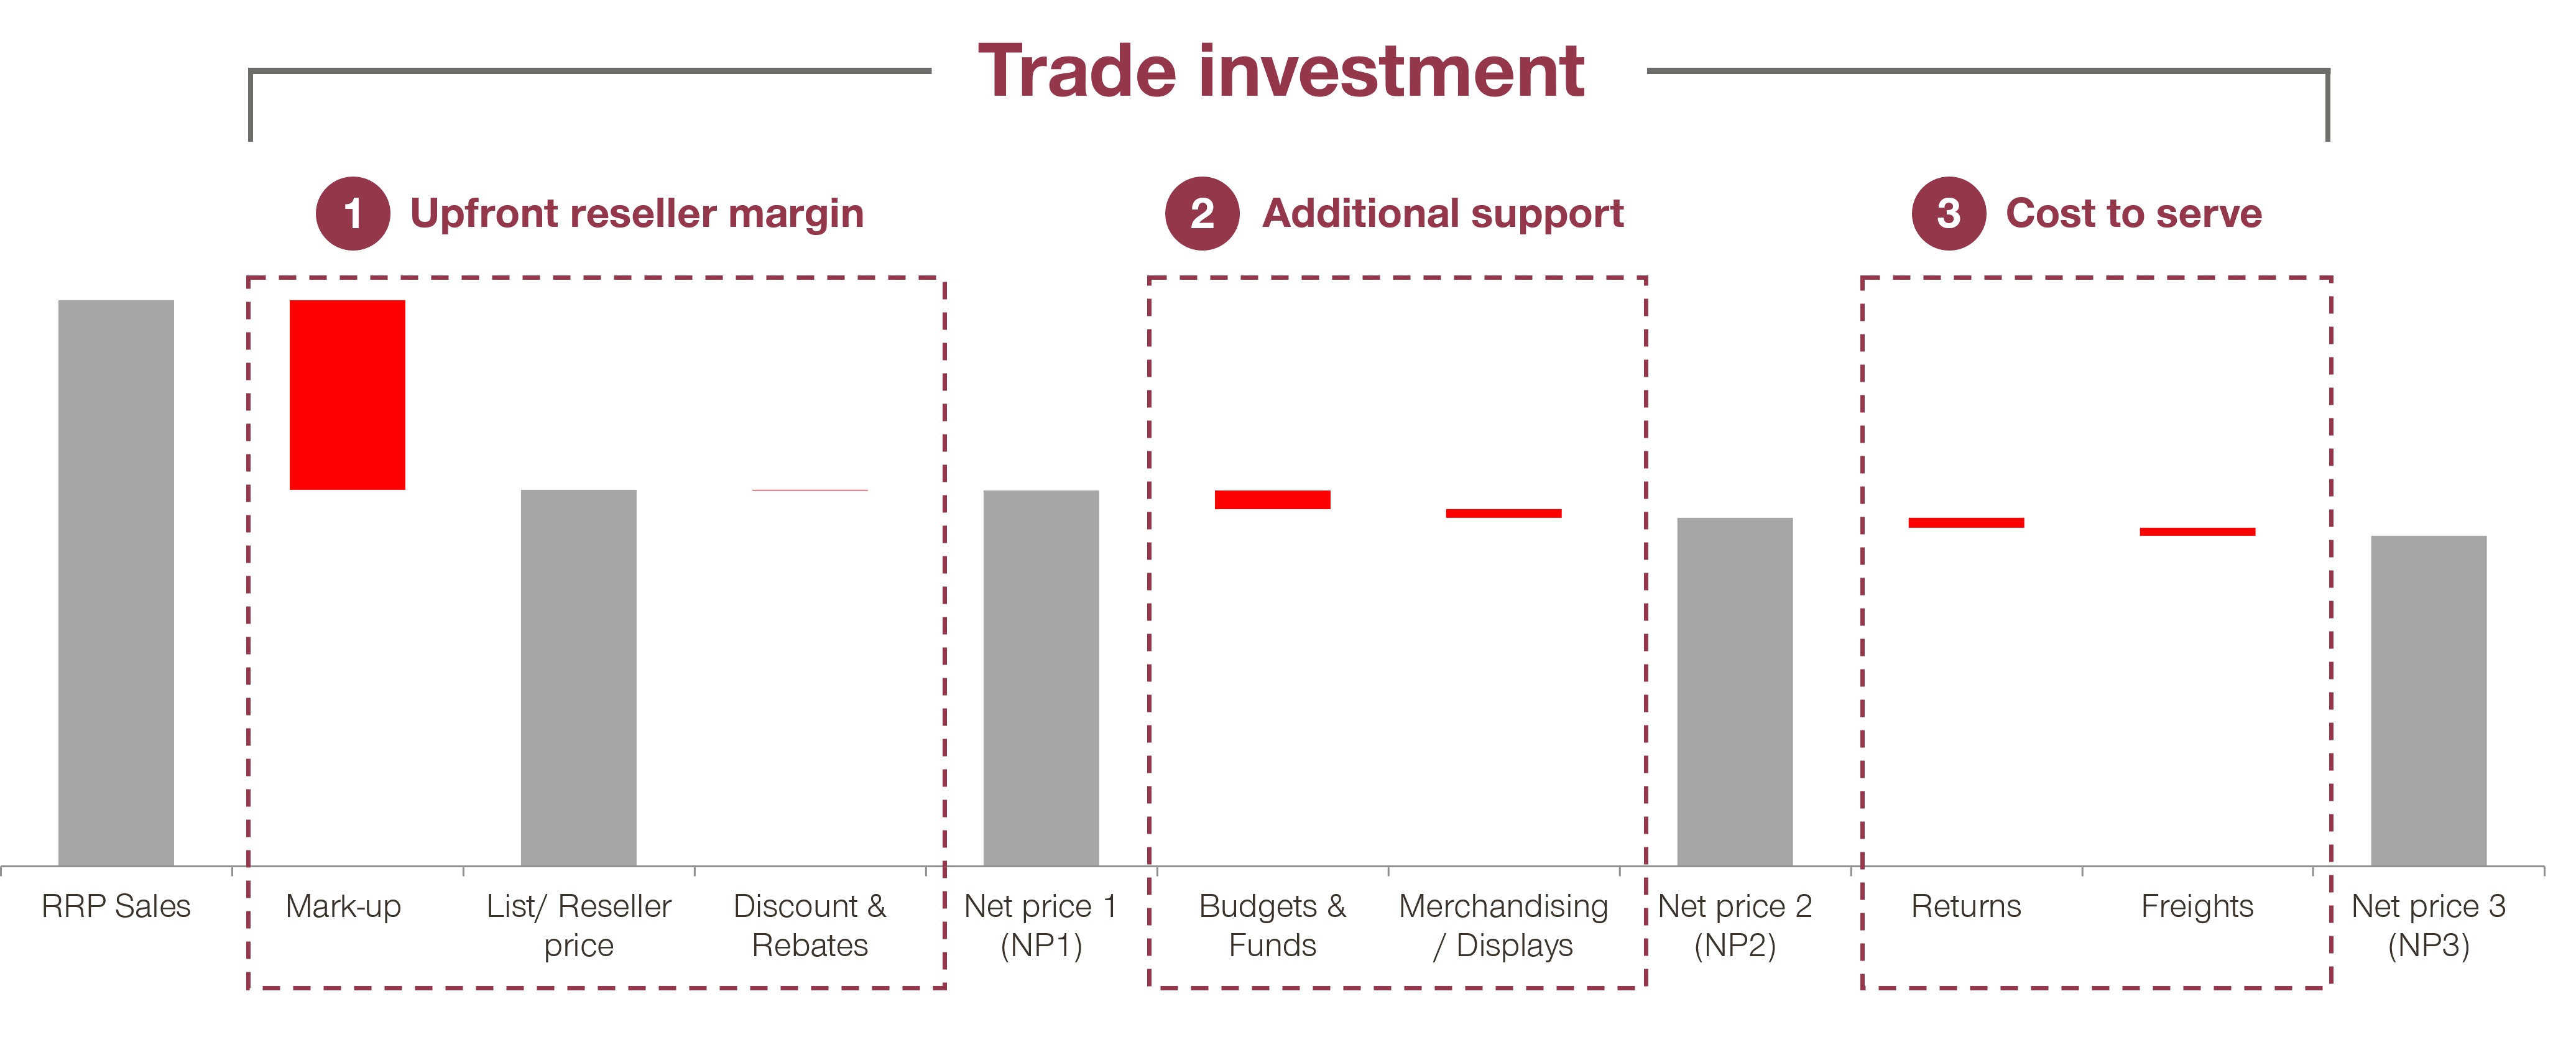 trade investment chart